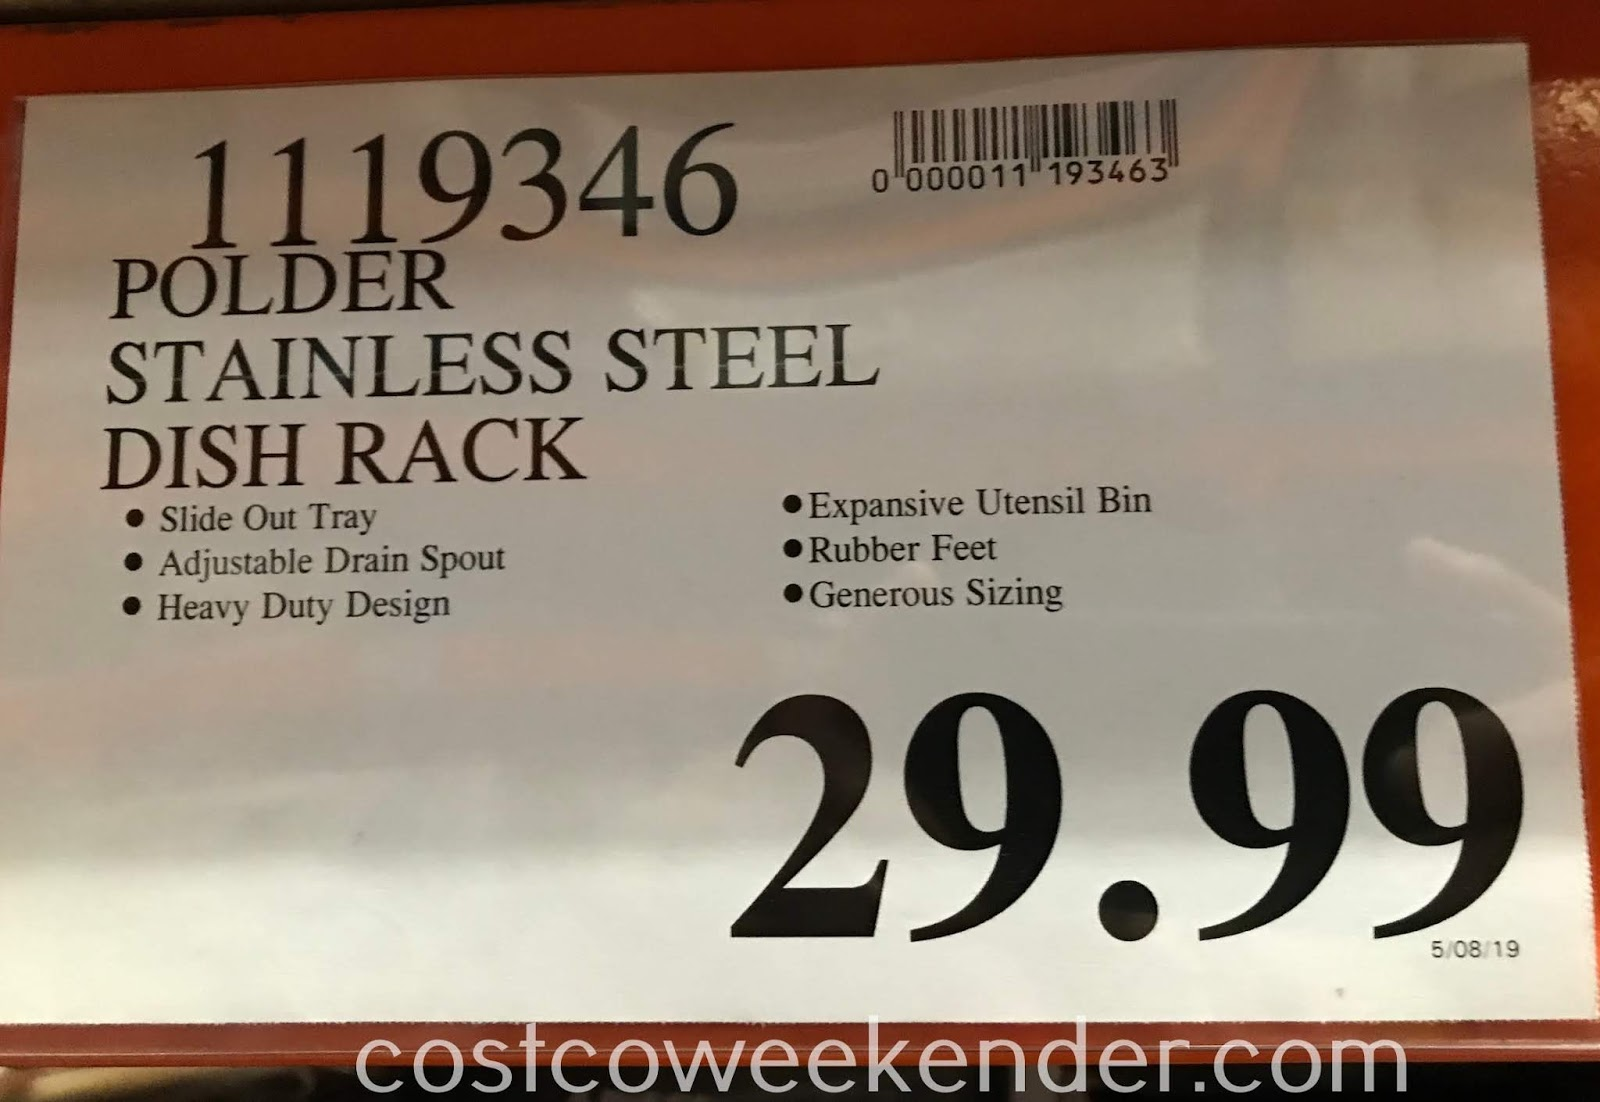 Deal for the Polder 4-piece Stainless Steel Dish Rack Set at Costco